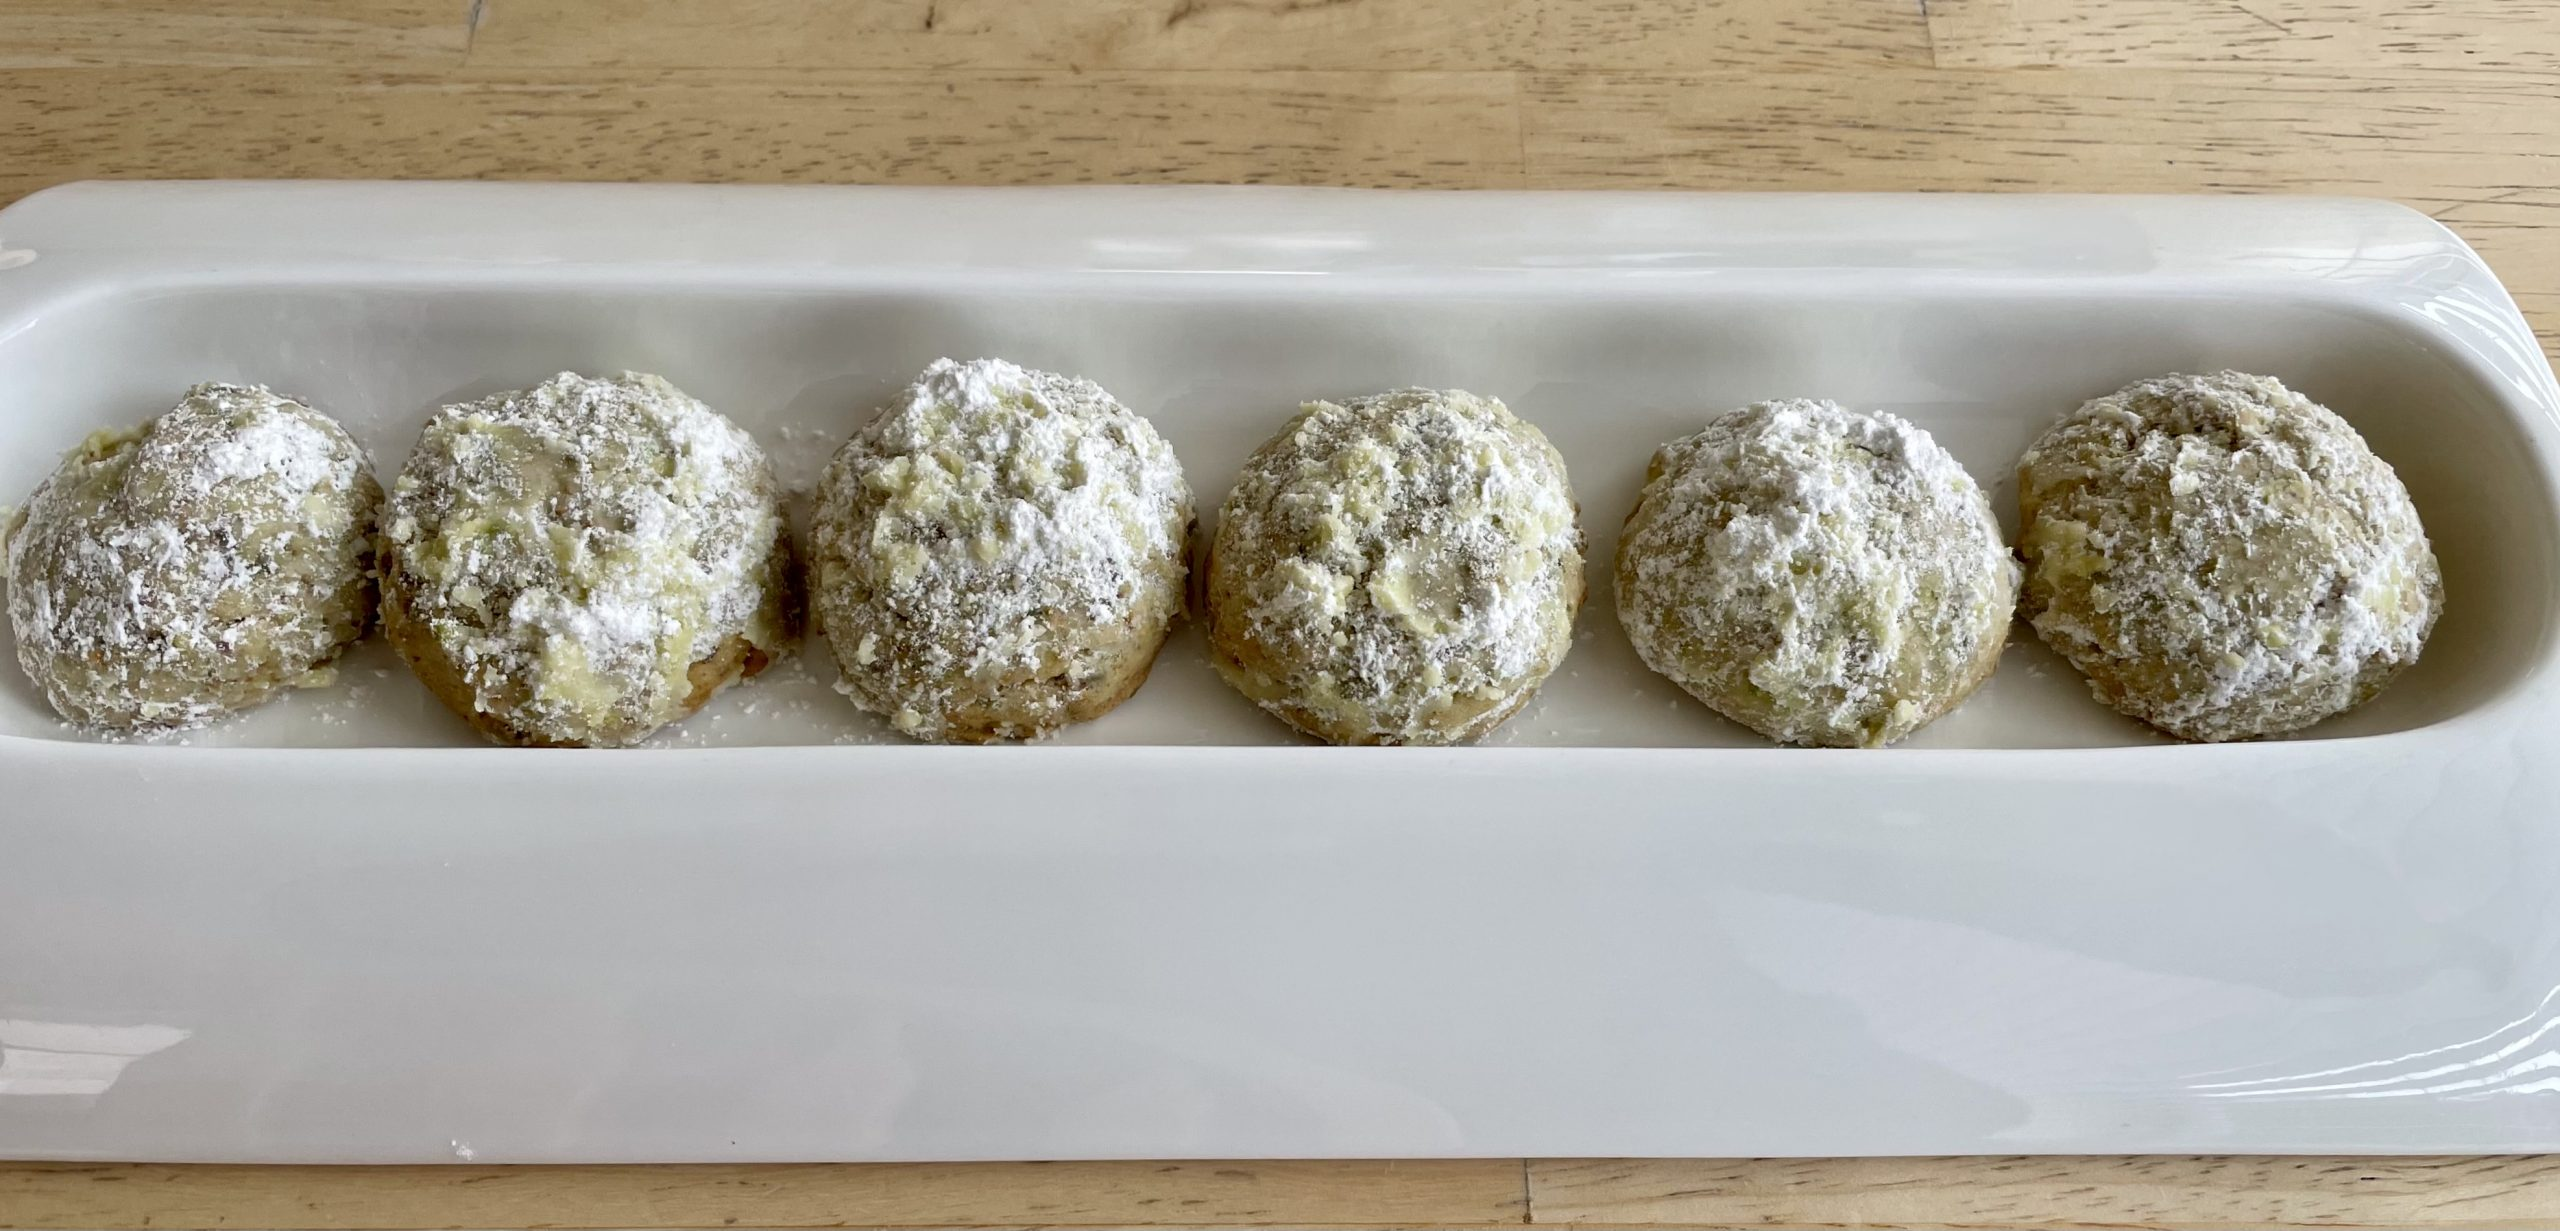 Pistachio Cardamom Cookies (Image by Author)